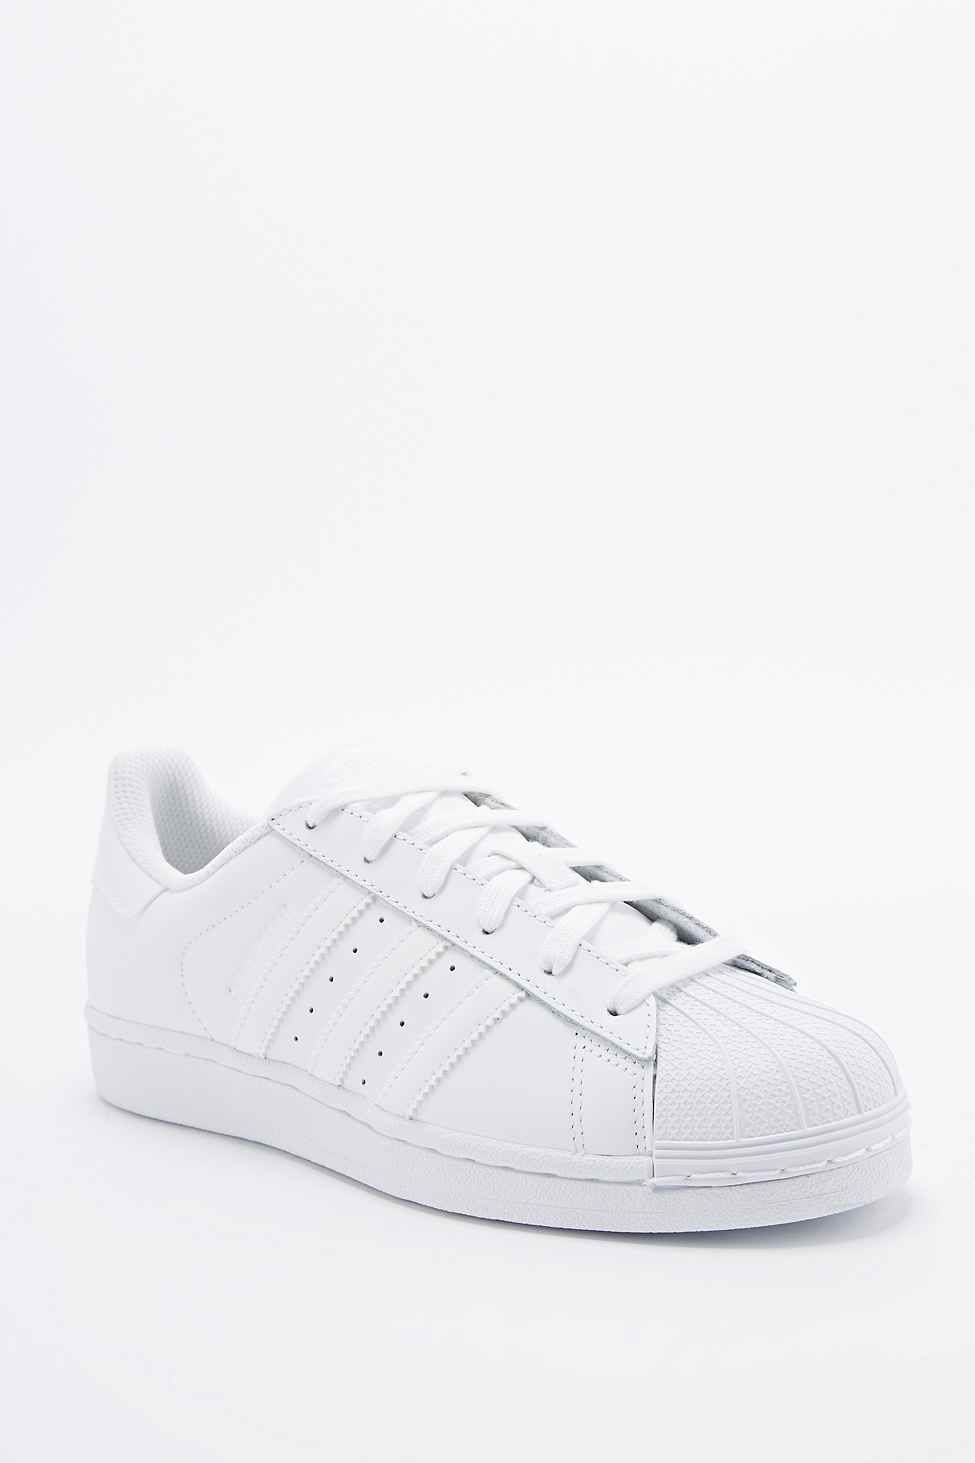 1abbf83c96f adidas Originals Superstar 80s All-White Trainers